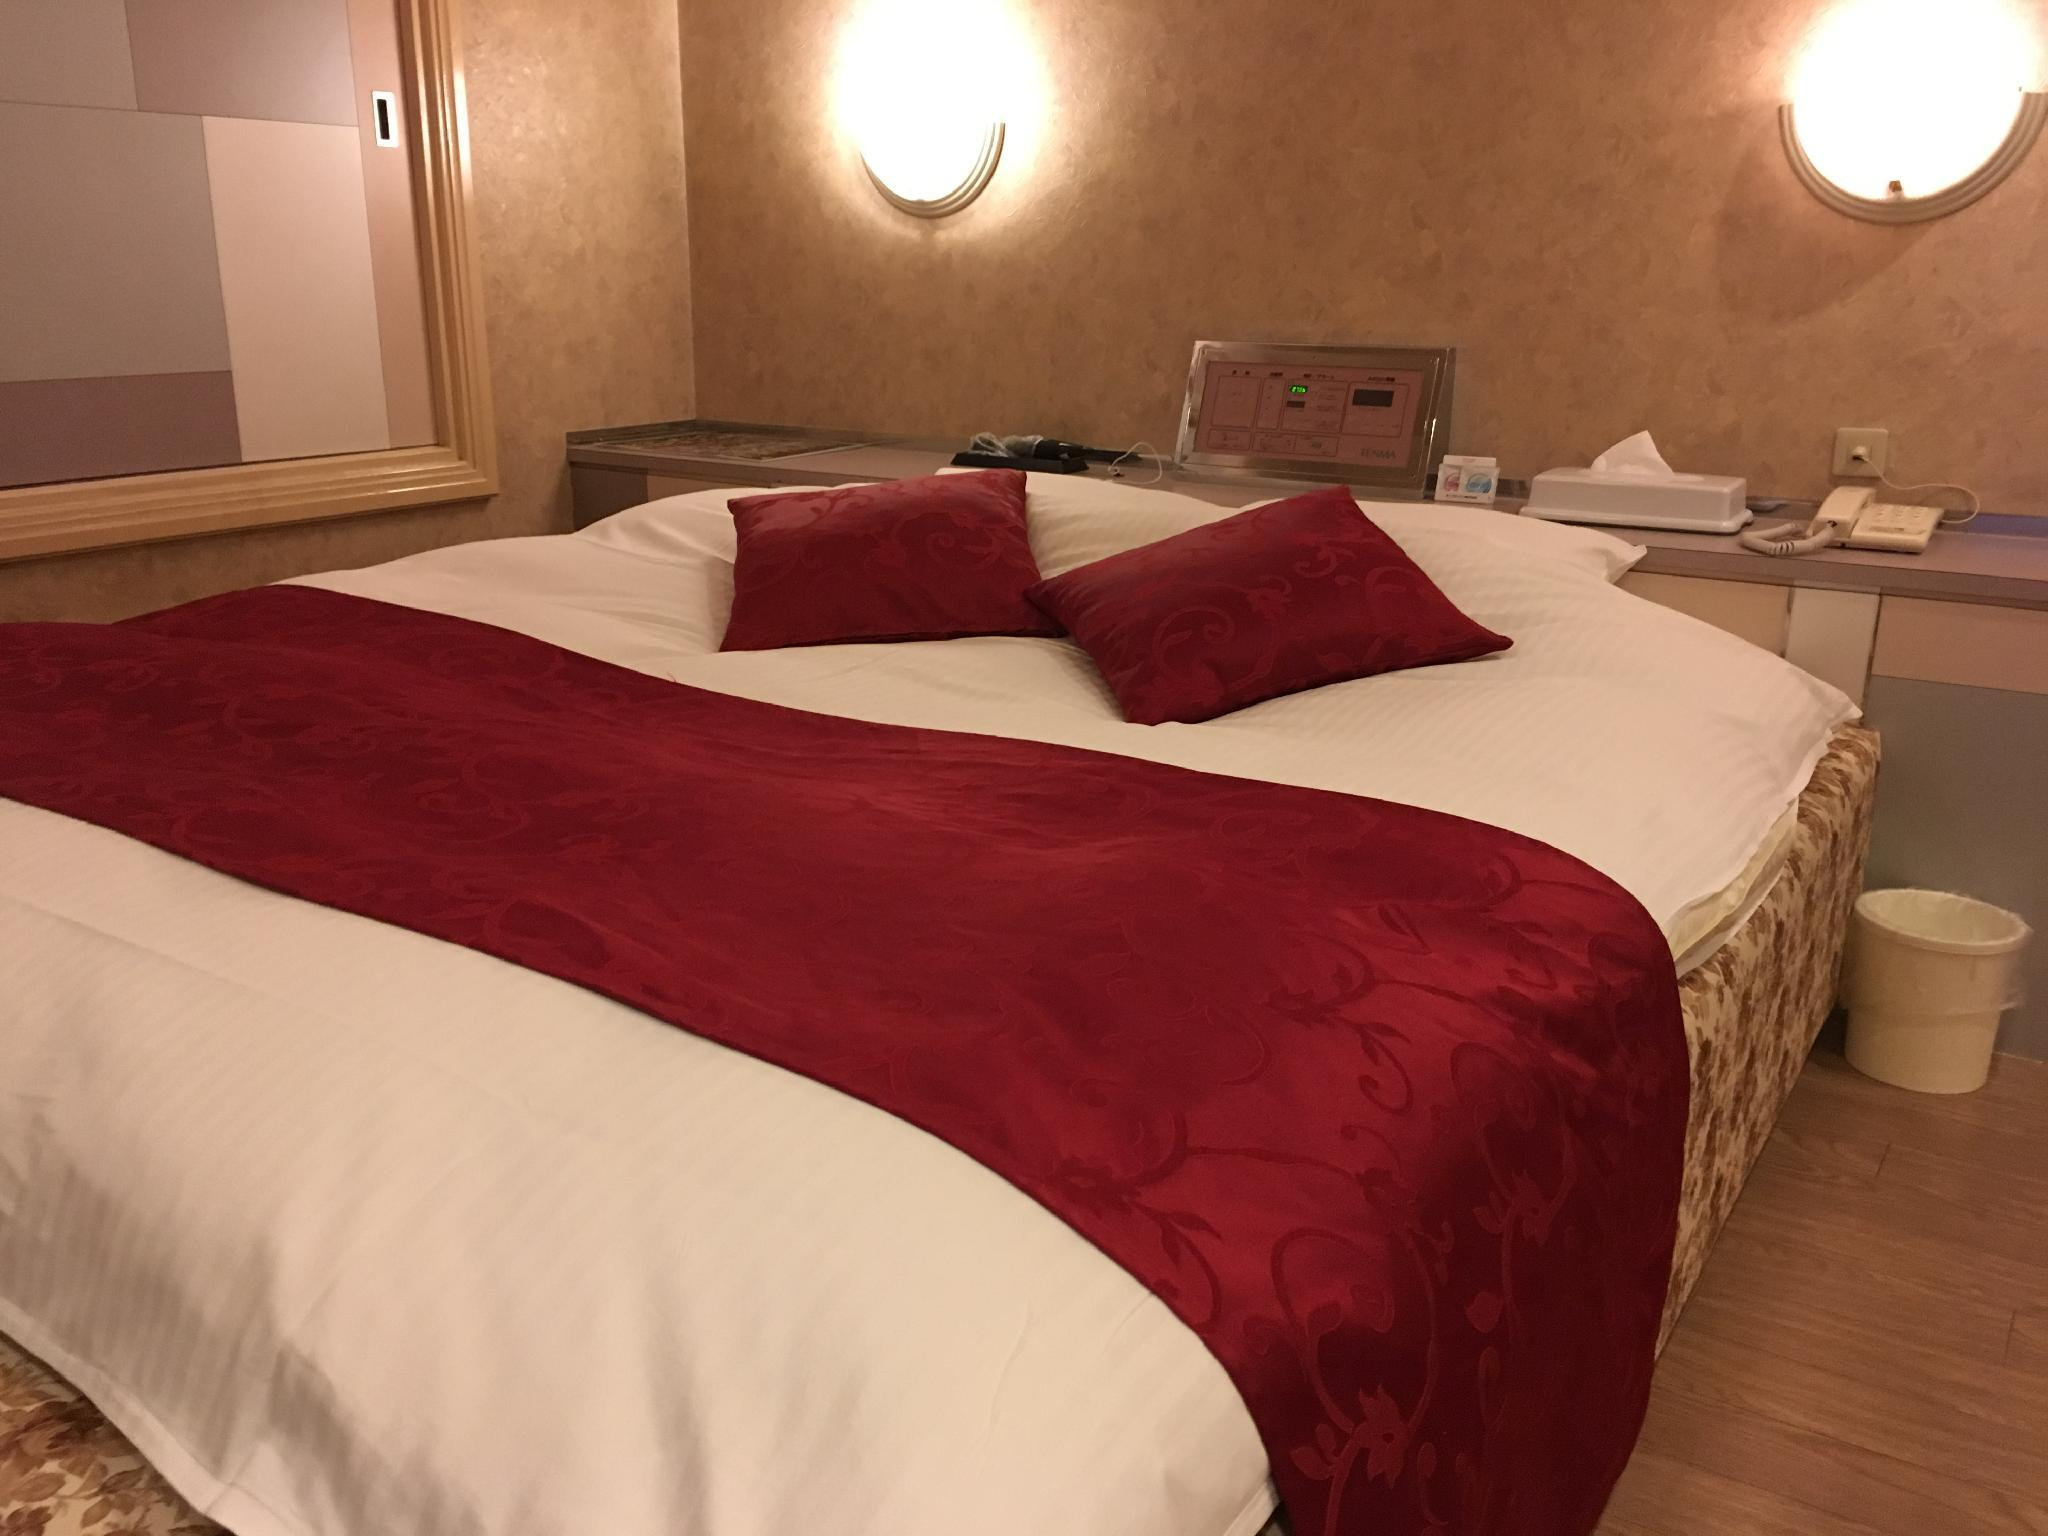 Tweepersoonskamer - Inchecken na 20.00 uur (Double Room - Check-In After 8 PM)